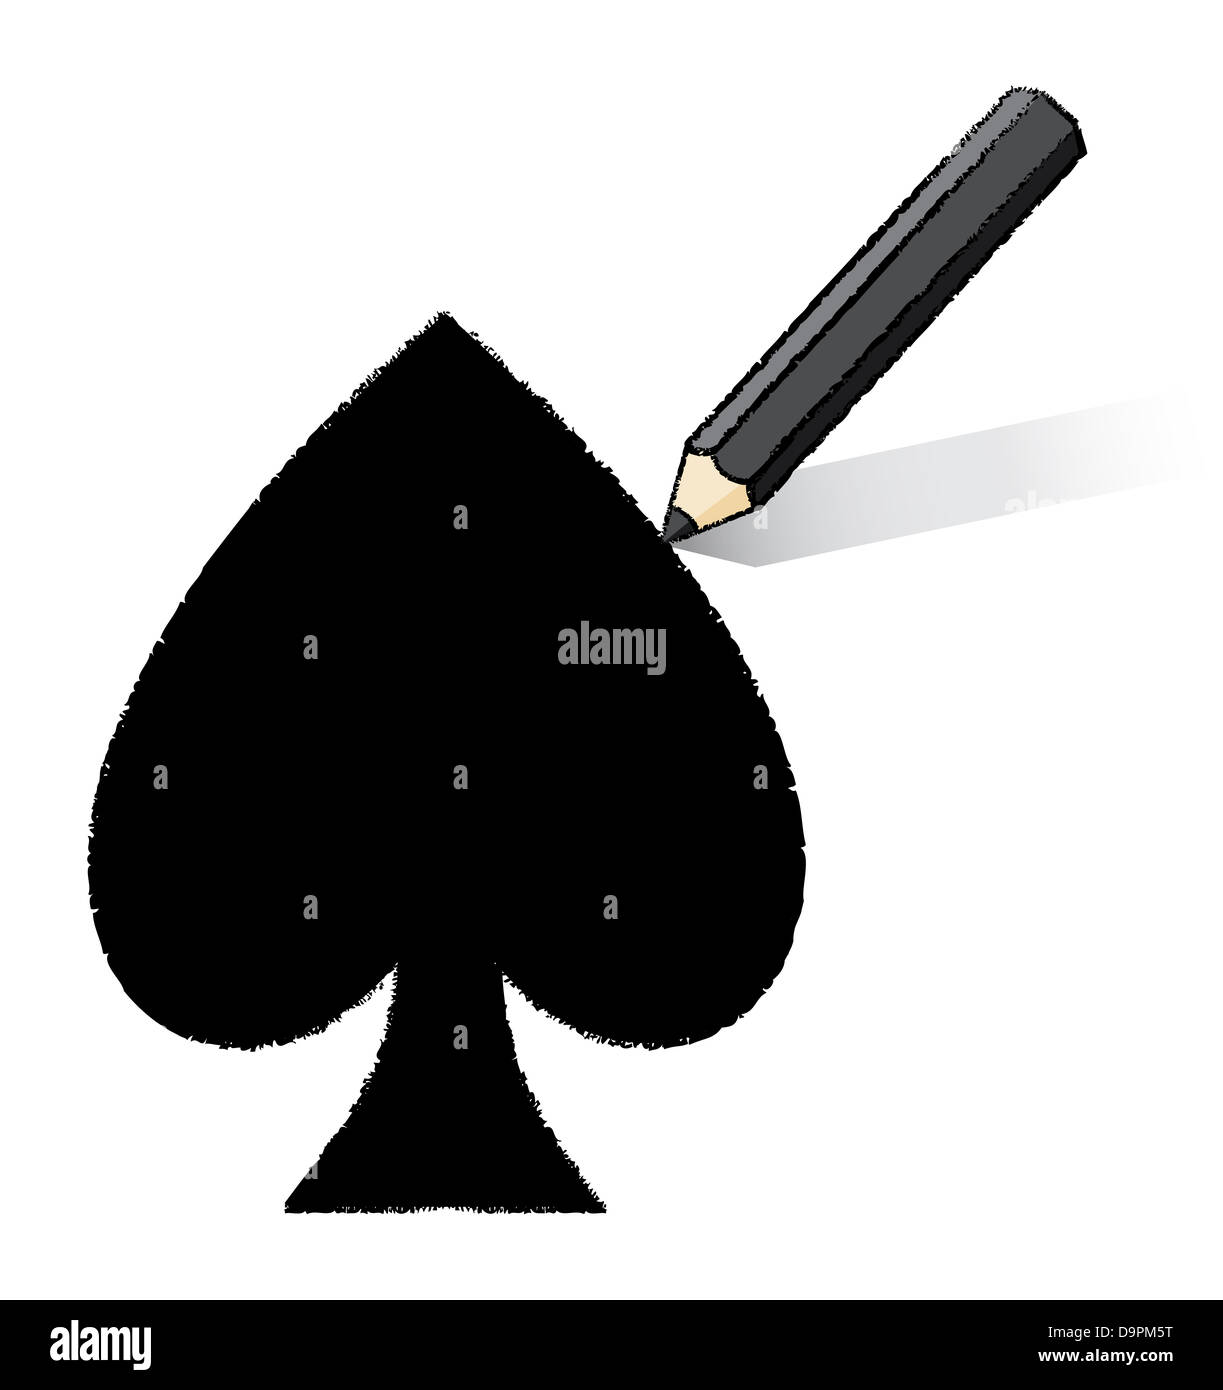 Black pencil drawing solid ace of spades playing card icon